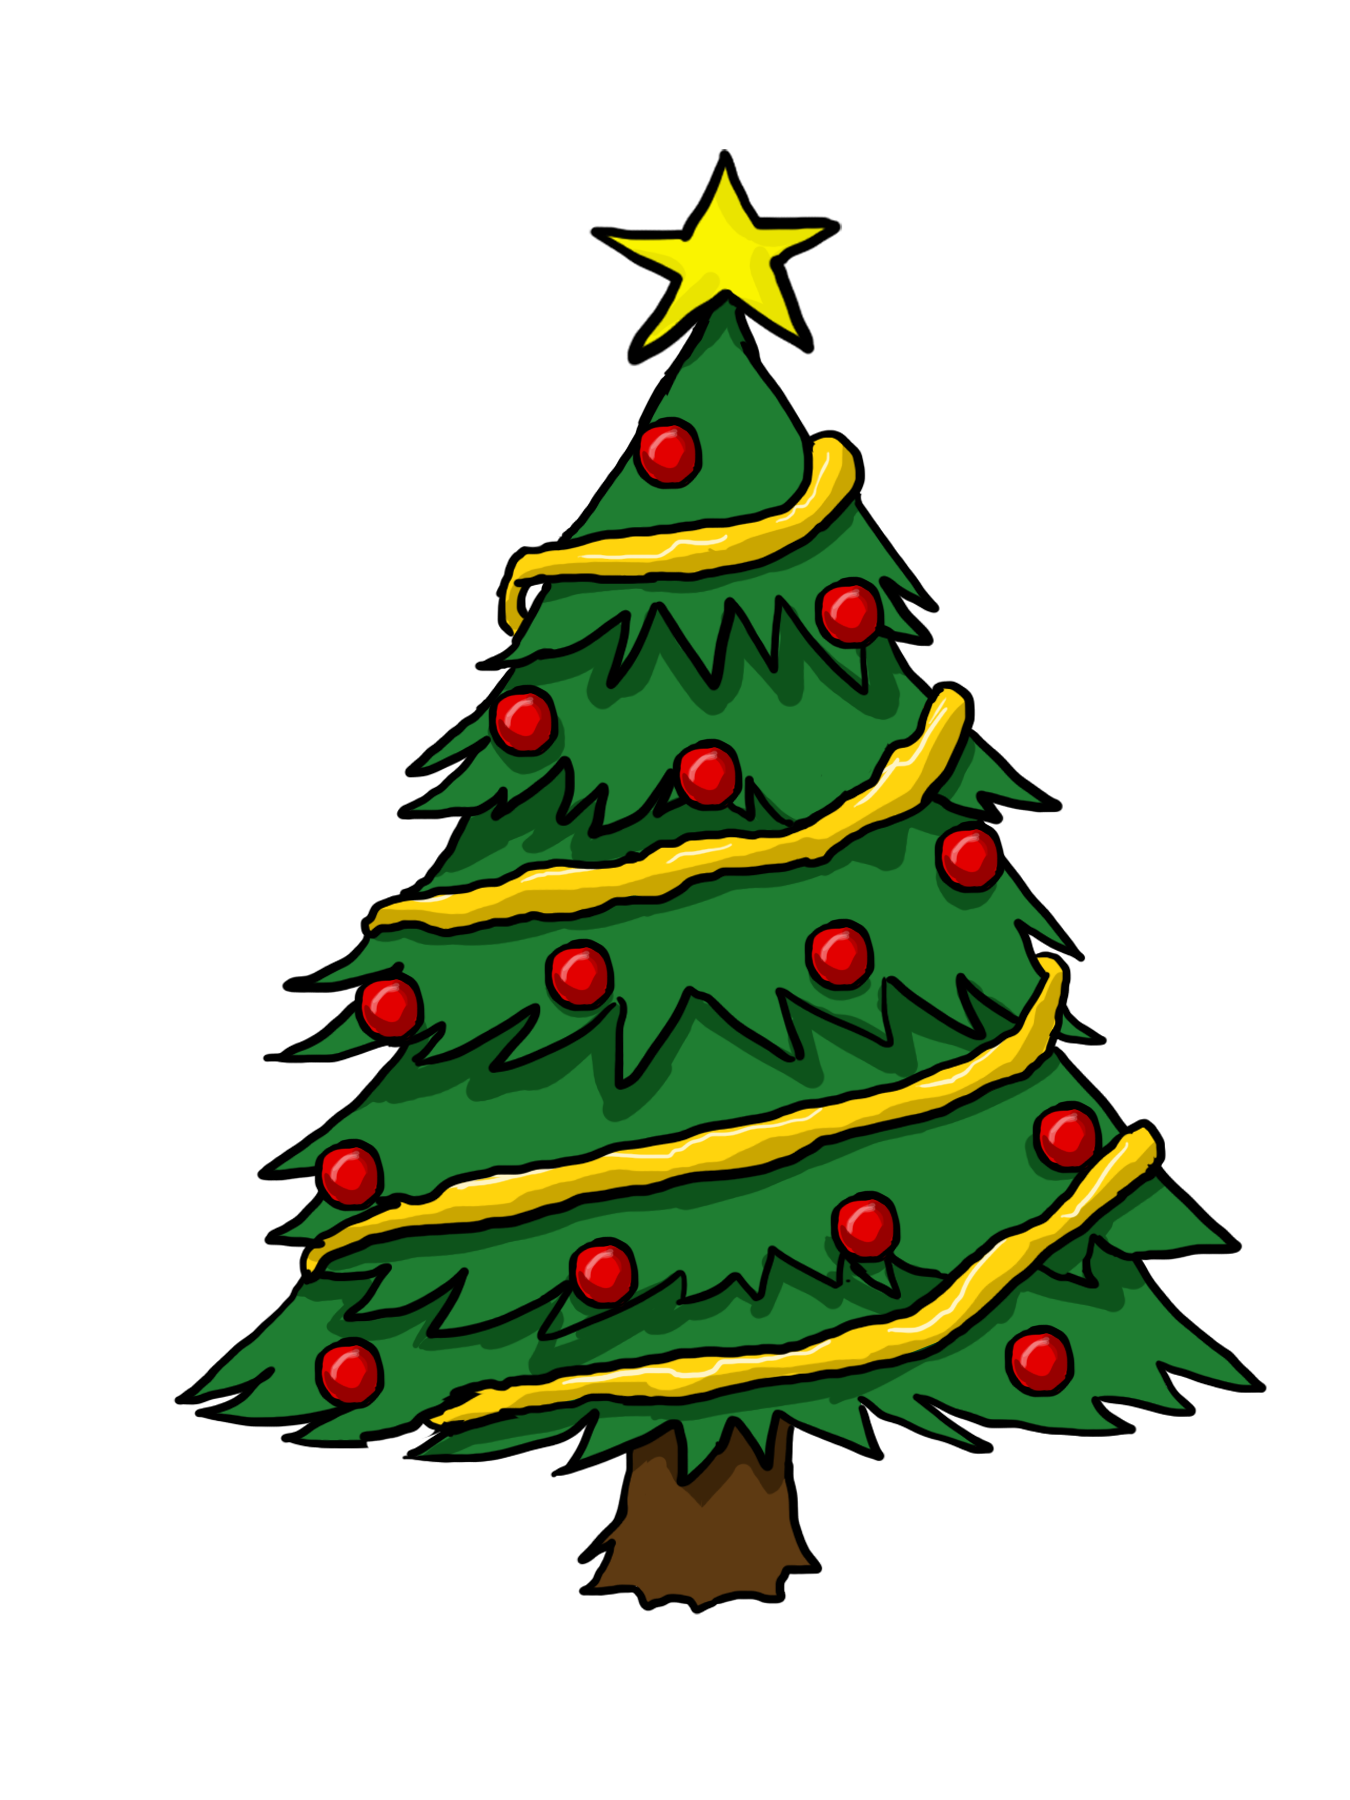 Clipart christmas tree images banner black and white stock Free Christmas Tree Cliparts, Download Free Clip Art, Free Clip Art ... banner black and white stock